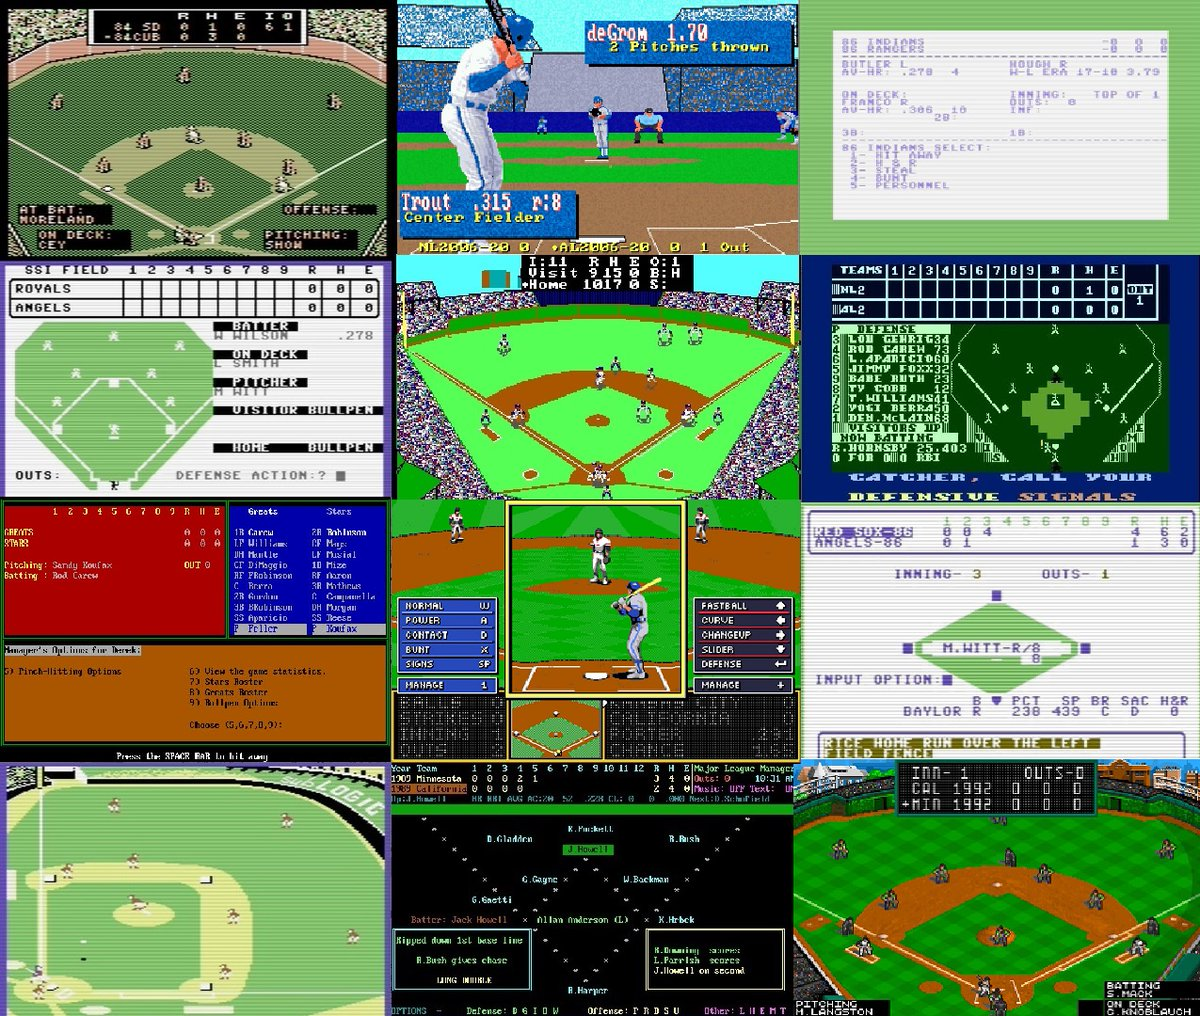 Retro reviews of classic computer baseball games https://t.co/2bj2TUYjsy #retrogaming #atari #commodore #apple #ibm #macintosh #amiga #baseball #ssi #AvalonHill #microleague #ElectronicArts #Weaver #Stormfront #Larussa #FullCount #APBA #Strat #PTP #PureStat #StatisPro #hardball https://t.co/L0x9XRIzBr